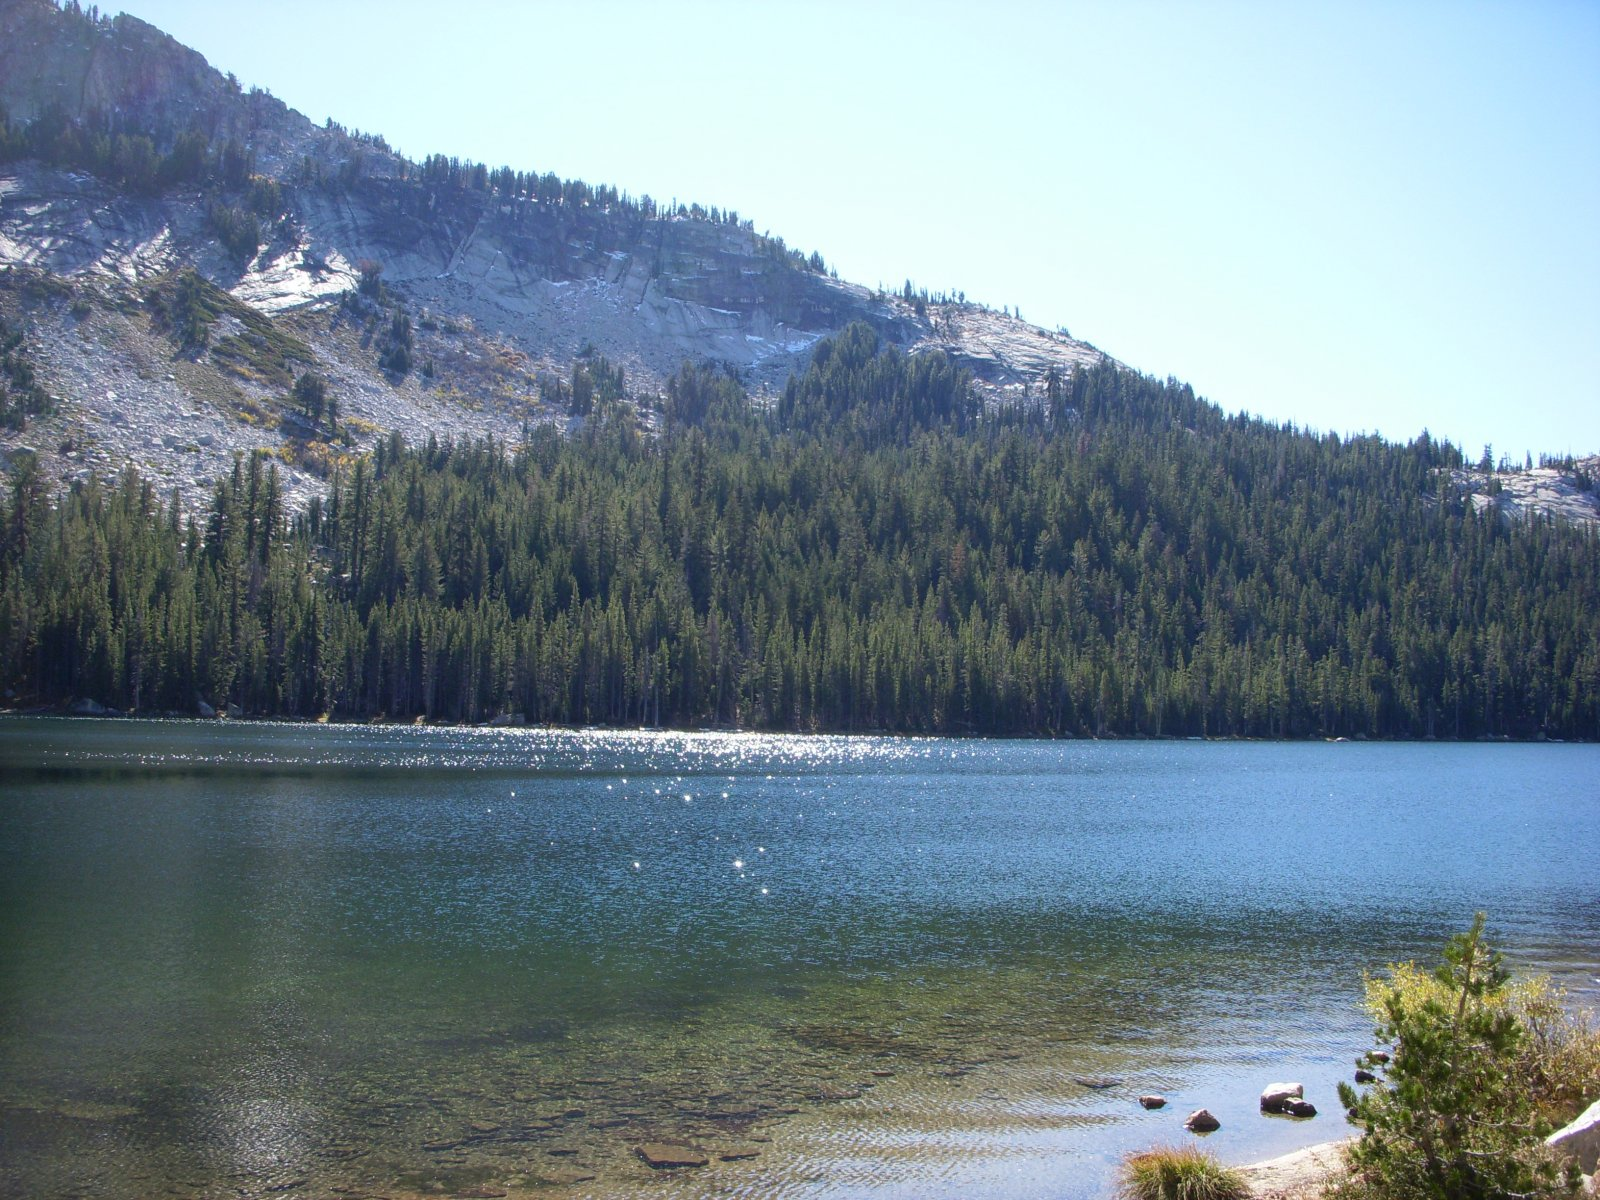 Click image for larger version  Name:Yosemite Oct2011 1790.jpg Views:69 Size:427.4 KB ID:144374